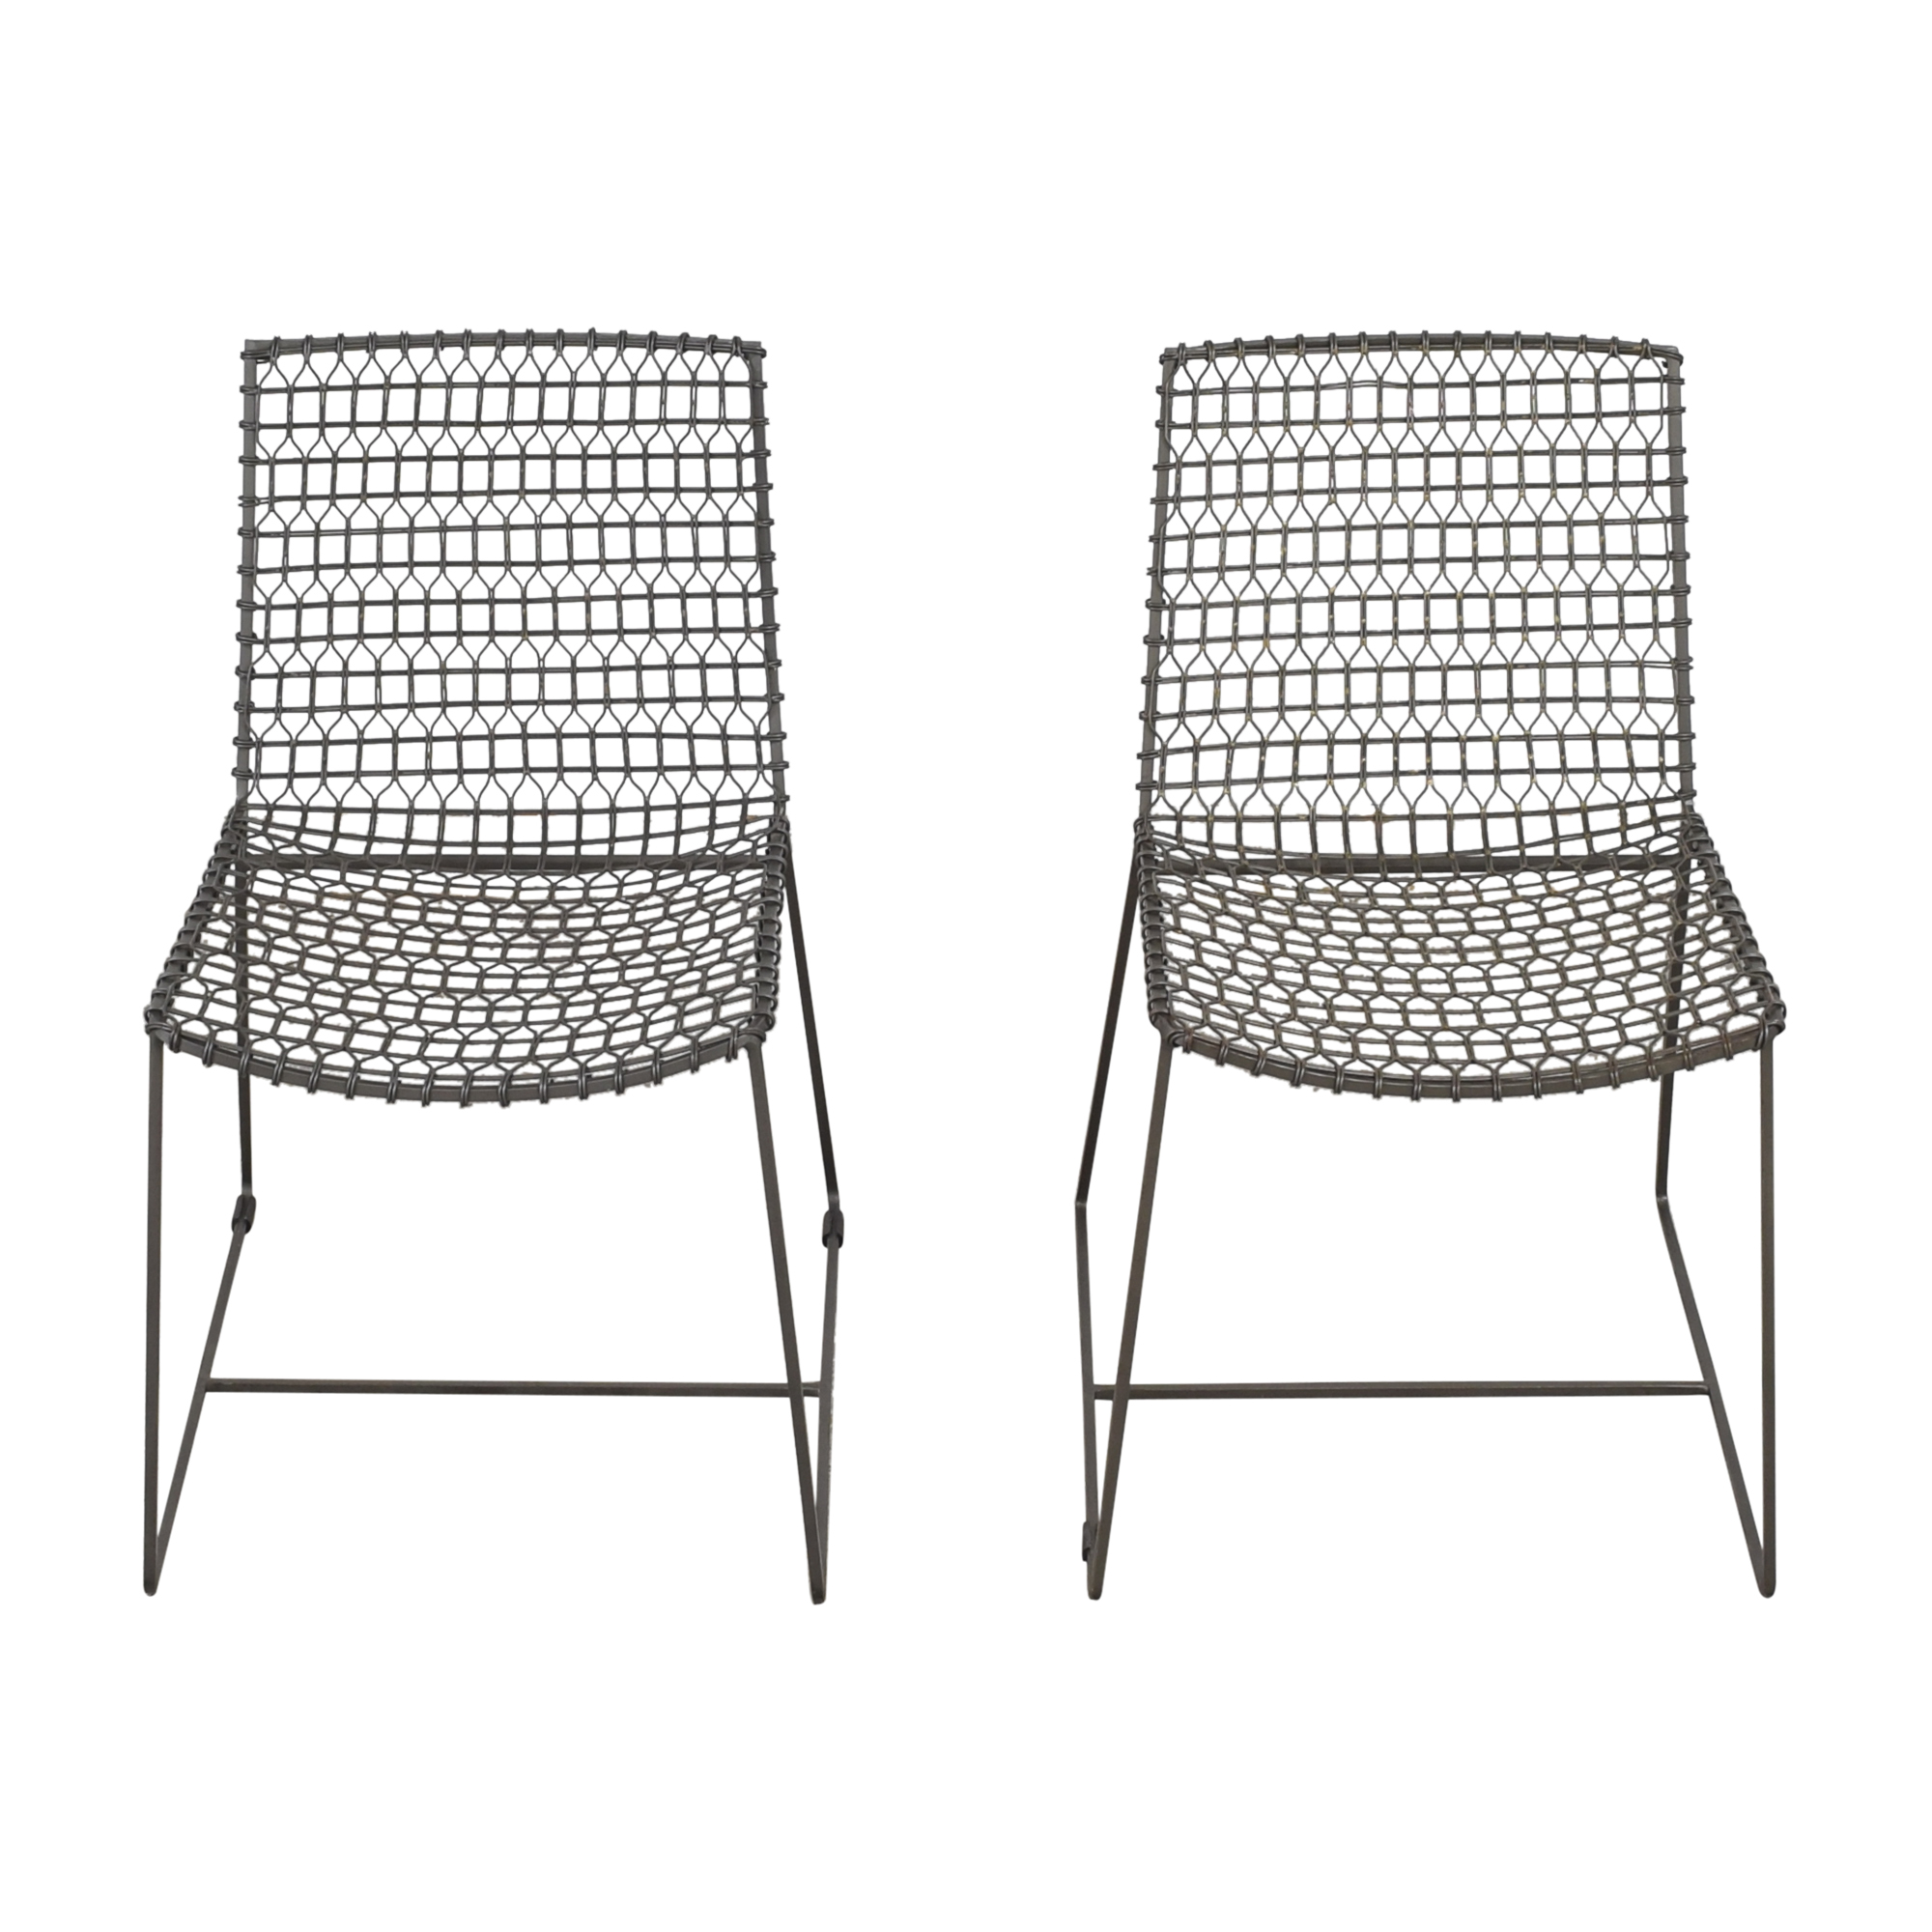 Crate & Barrel Crate & Barrel Tig Dining Chairs pa